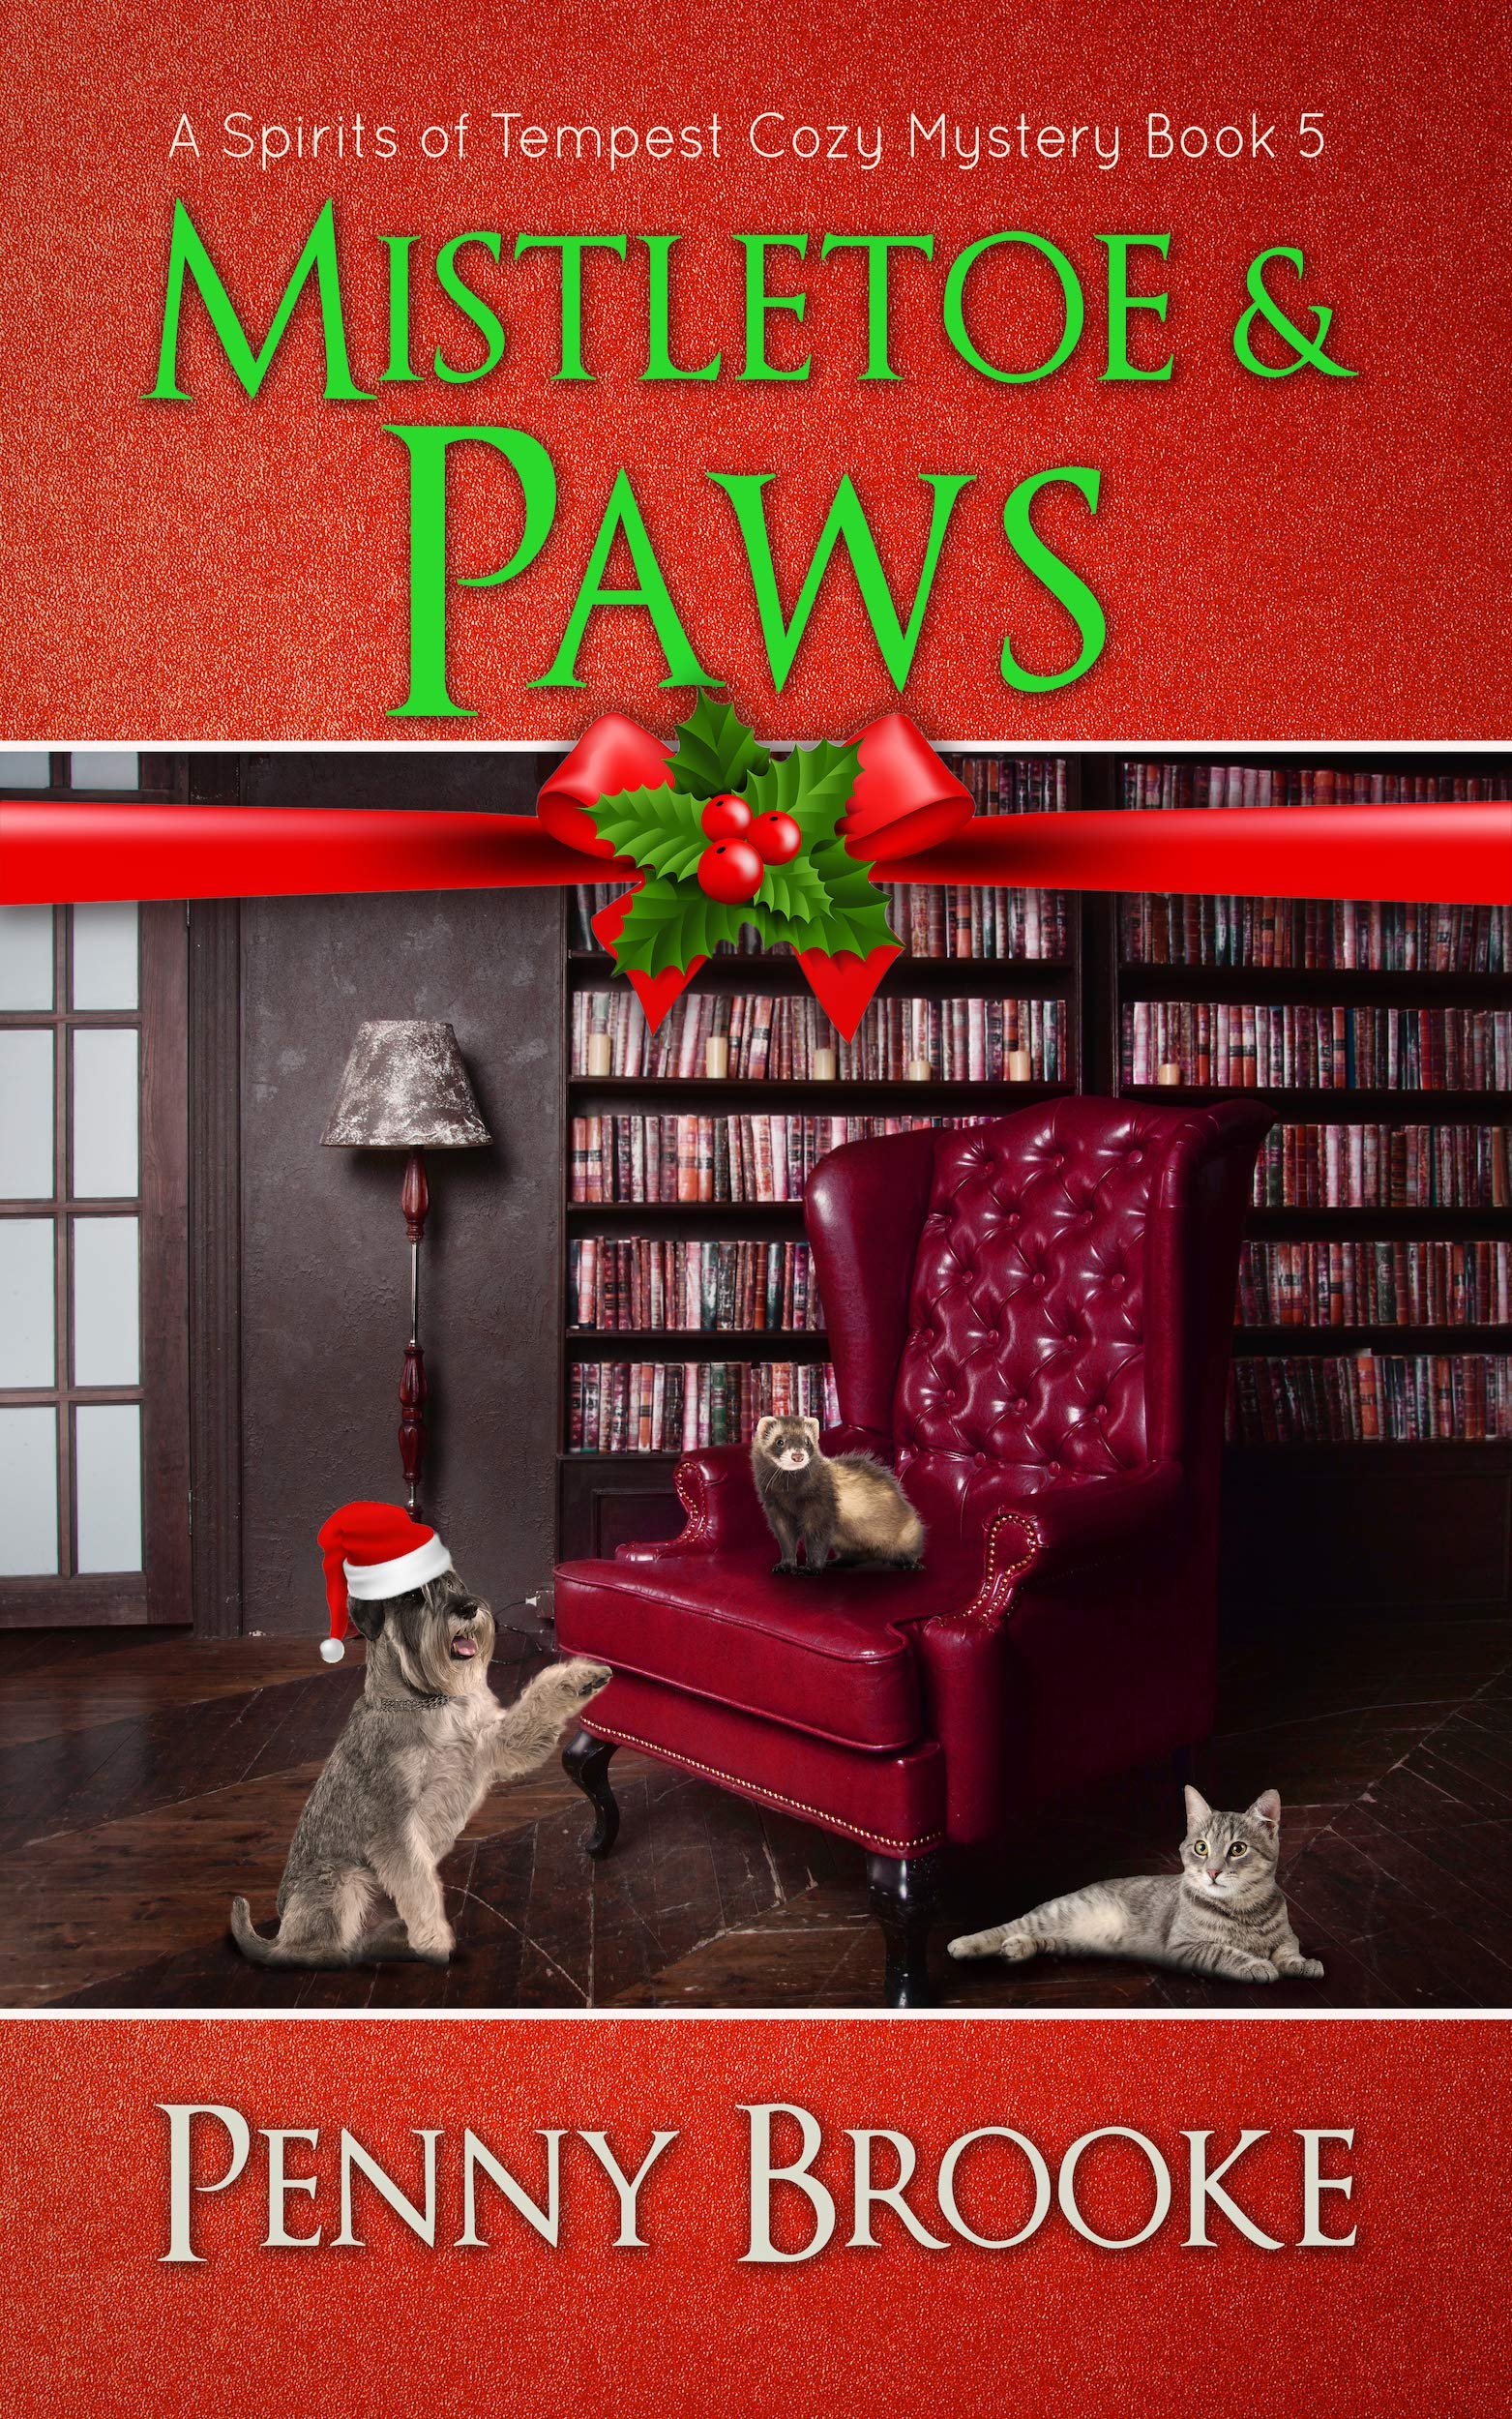 Mistletoe and Paws (A Spirits of Tempest Cozy Mystery Book 5)